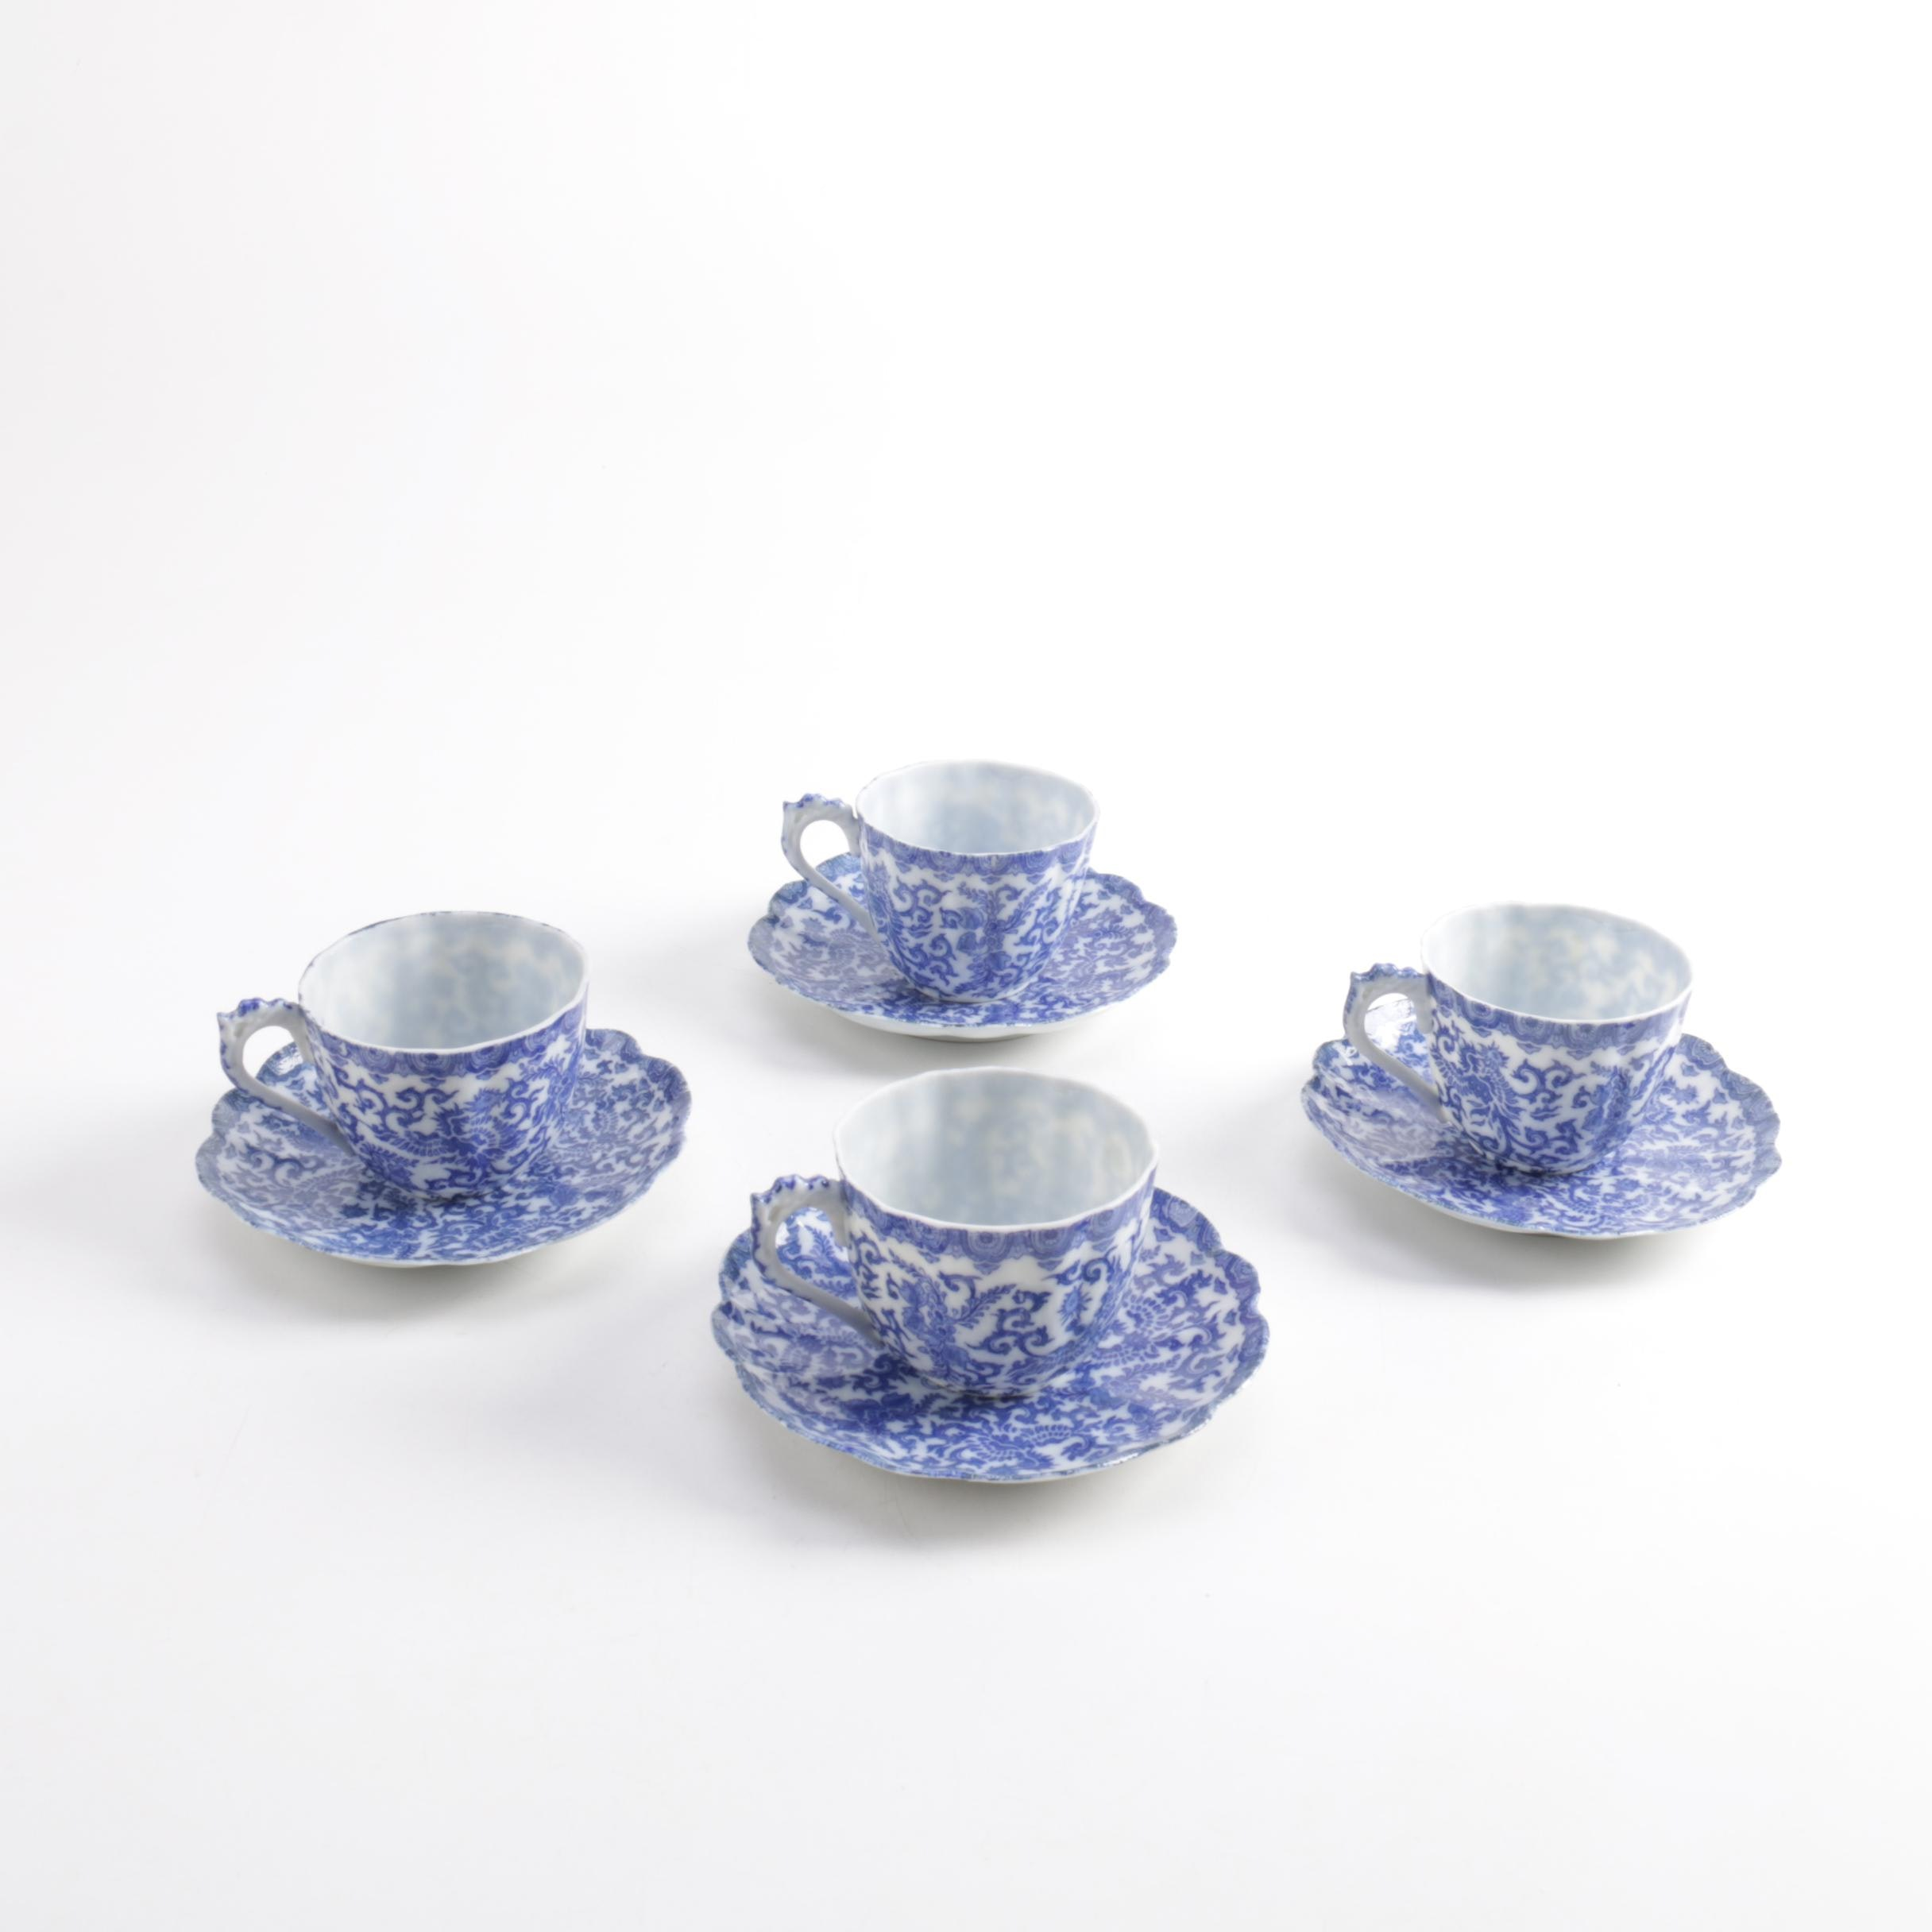 Porcelain Teacups and Saucers